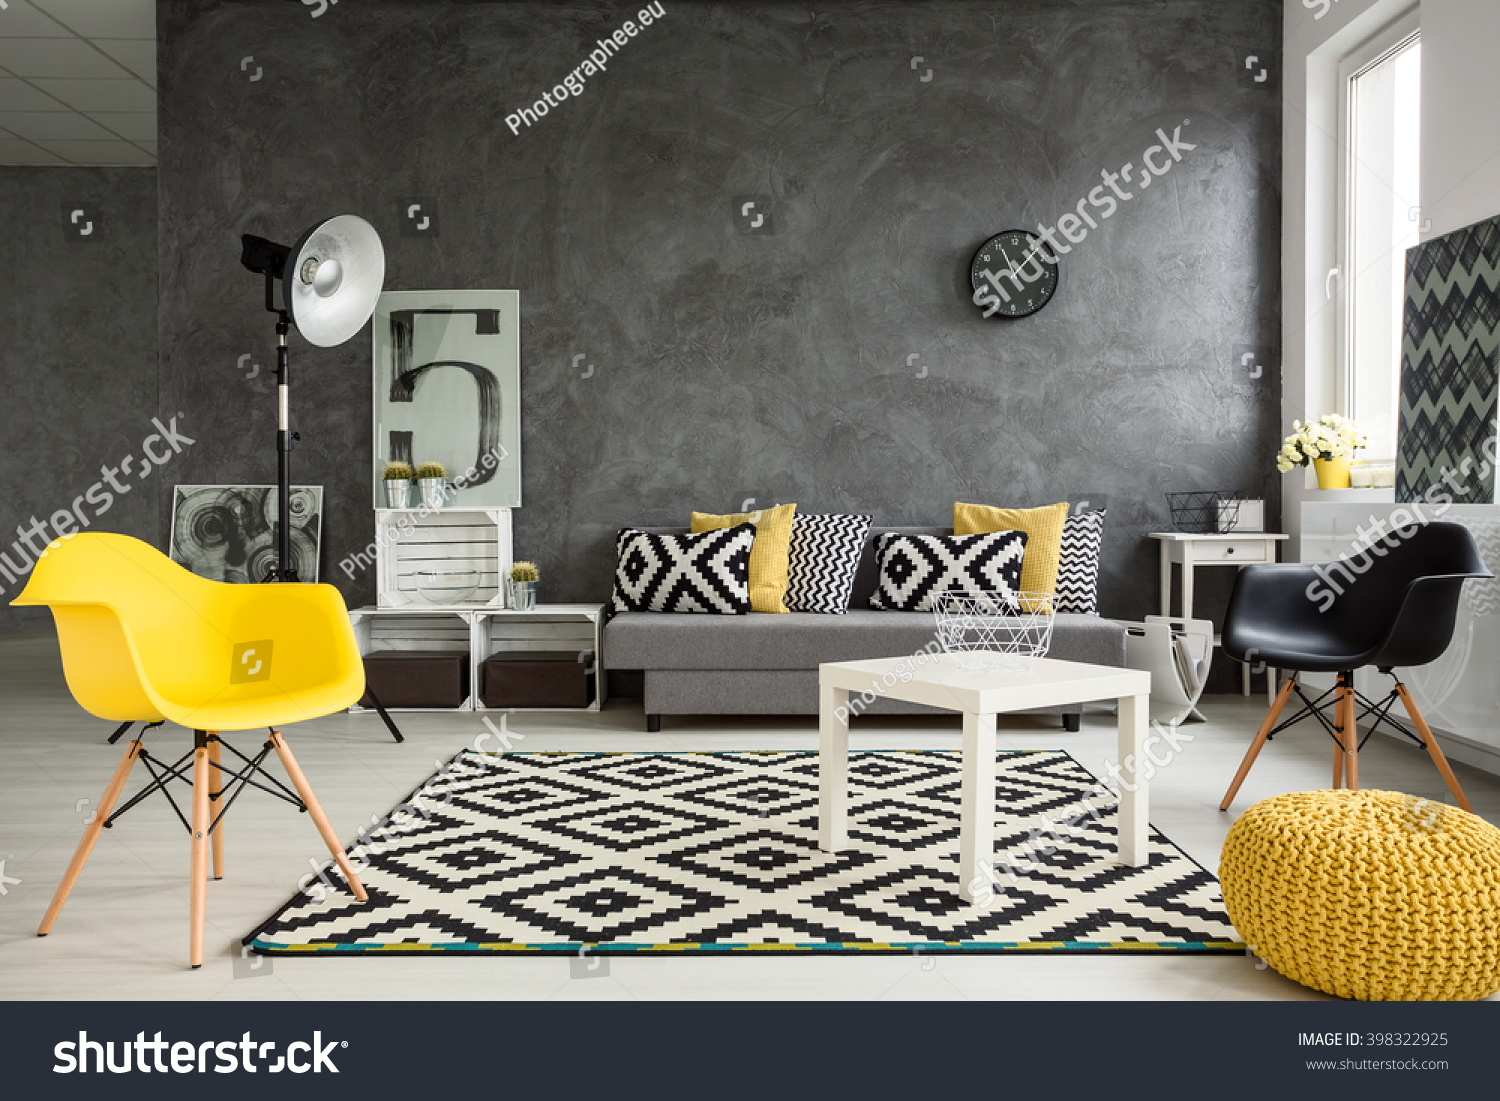 Grey Living Room With Sofa, Chairs, Standing Lamp, Small Table, Yellow  Details